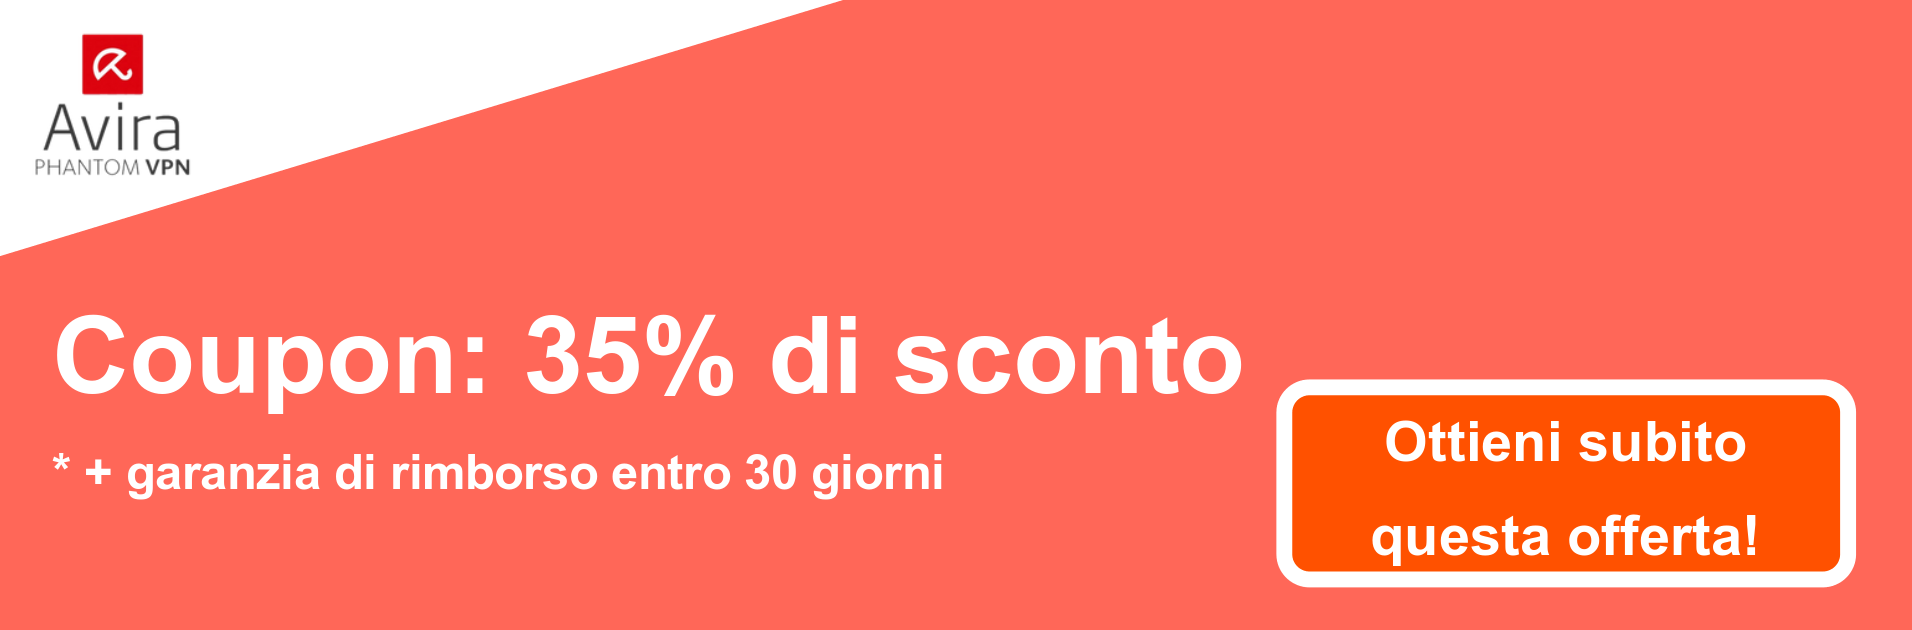 Banner coupon AviraVPN - 35% di sconto